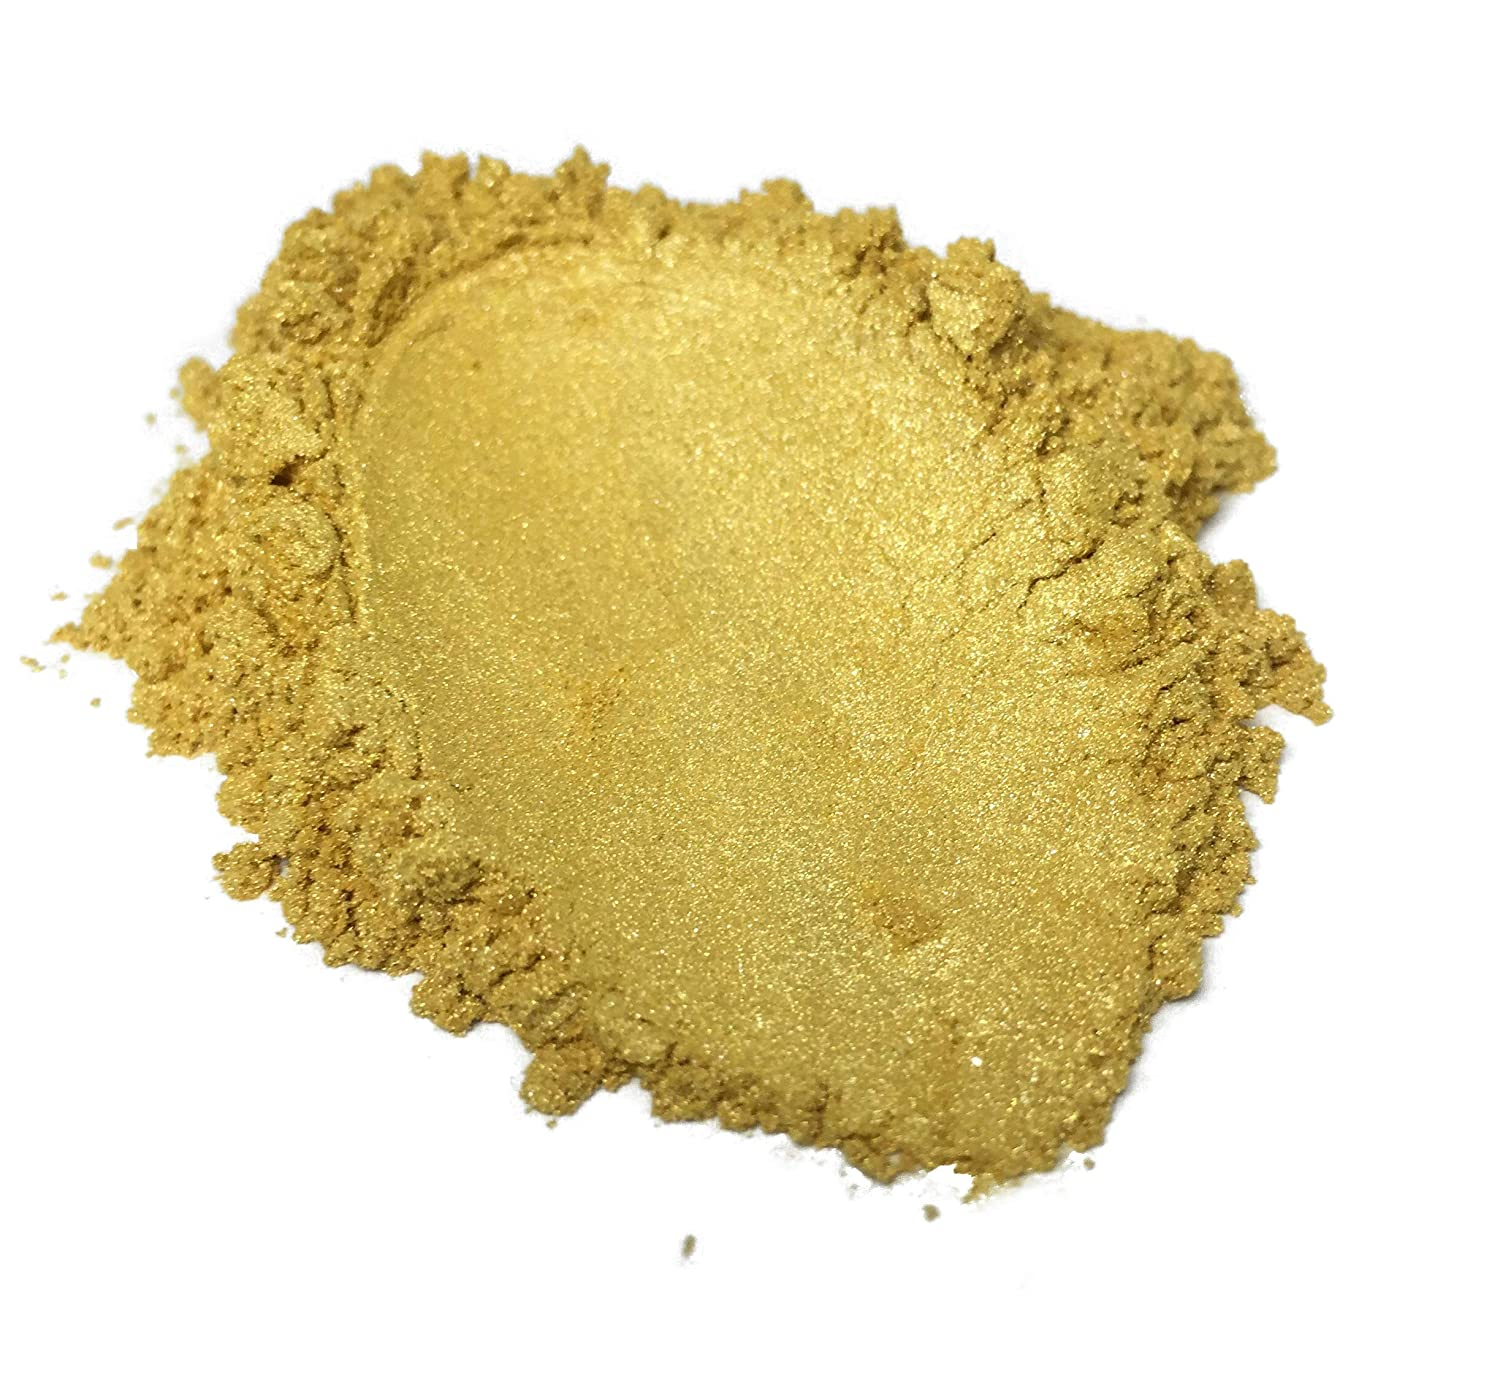 42g/1.5ozTHE MIDAS TOUCH Mica Powder Pigment (Epoxy, Resin, Soap, Plastidip) Black Diamond Pigments 1.5oz by weight